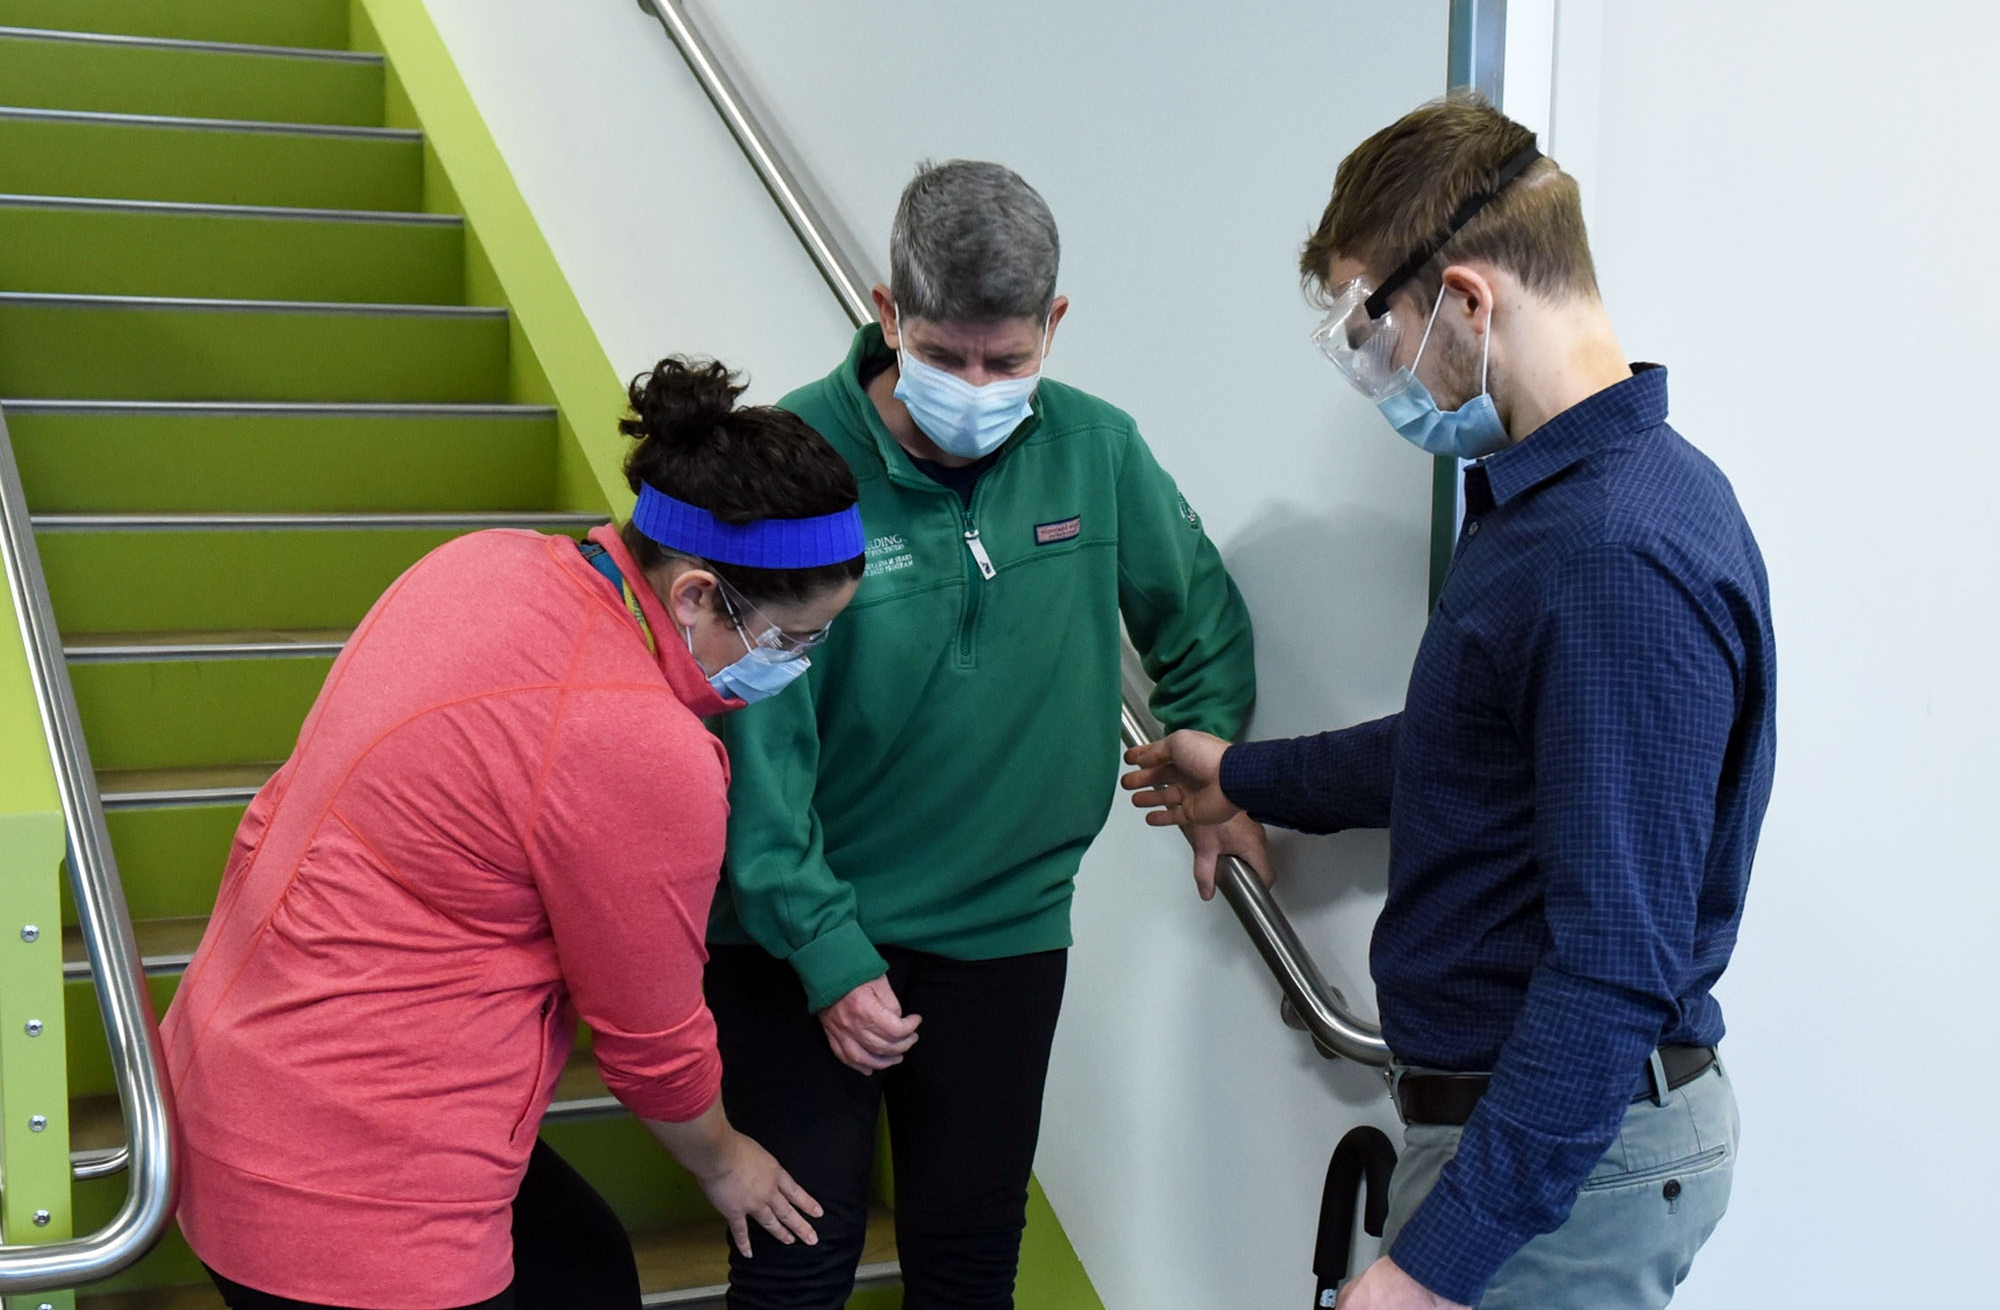 male and female student help man down stairs; all wear facemasks